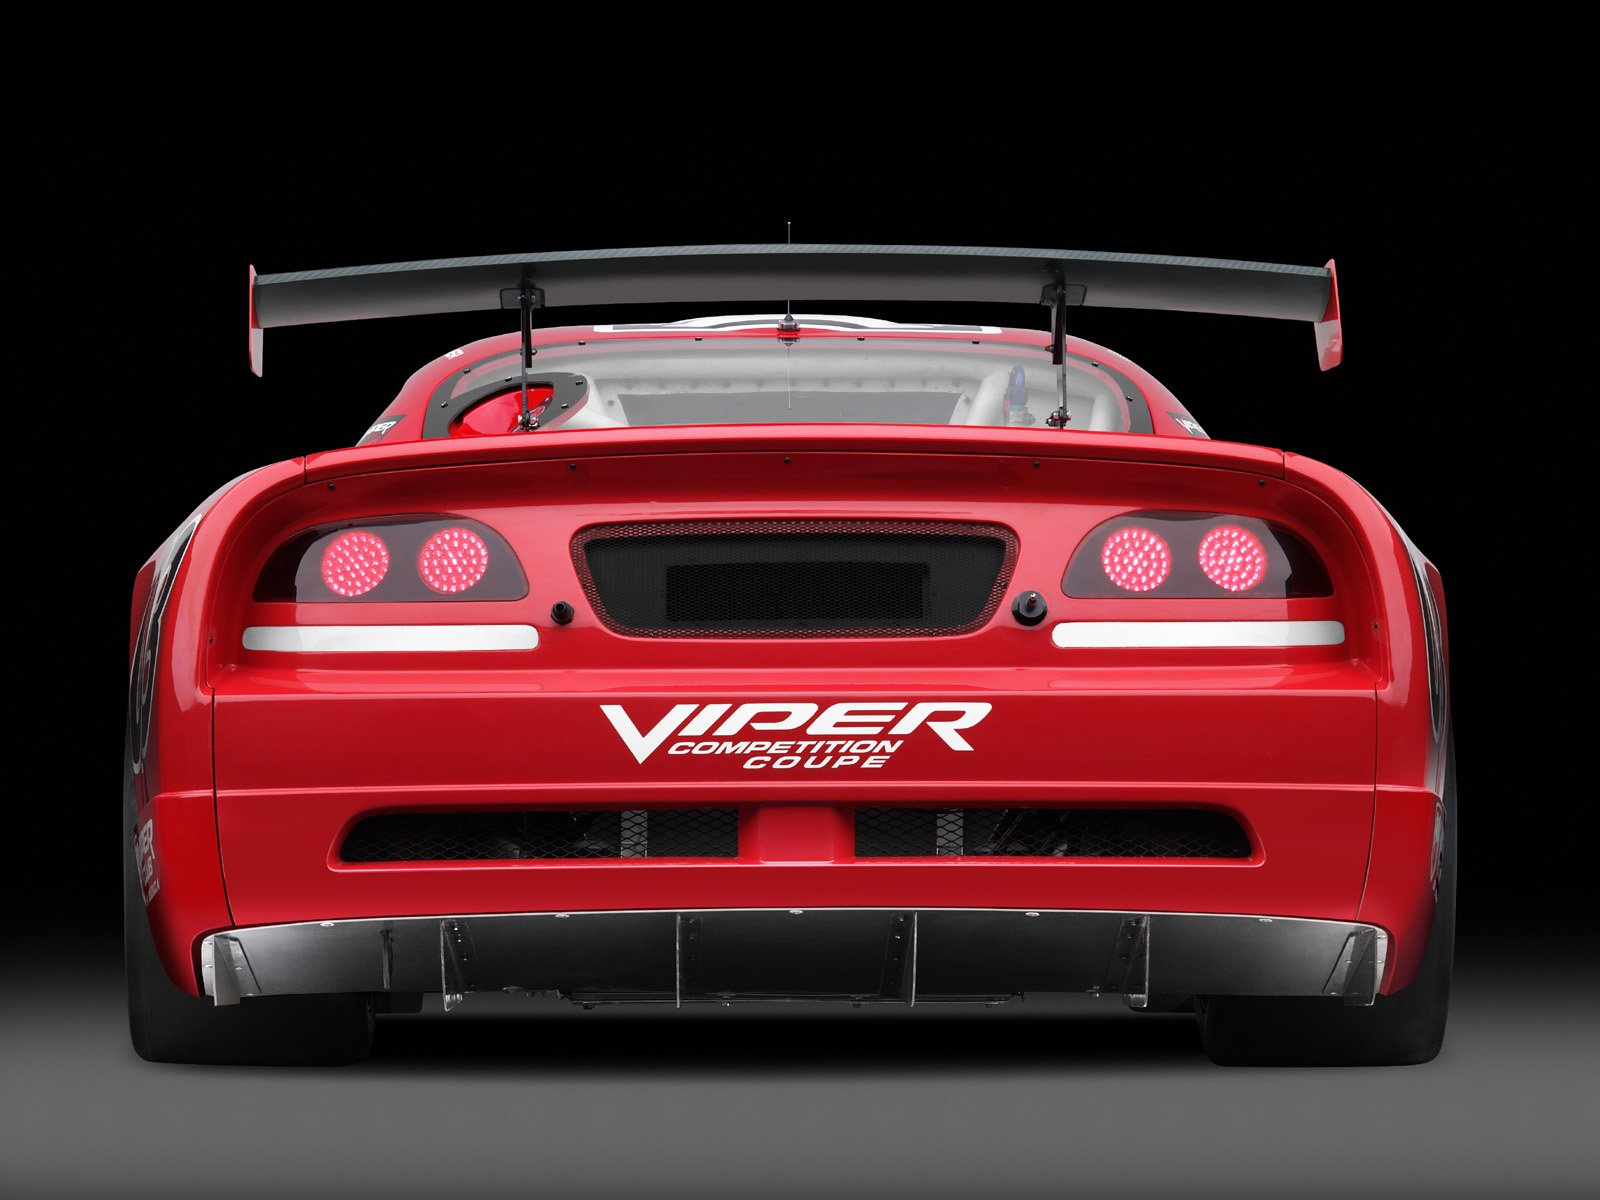 Viper dodge viper chrysler #4